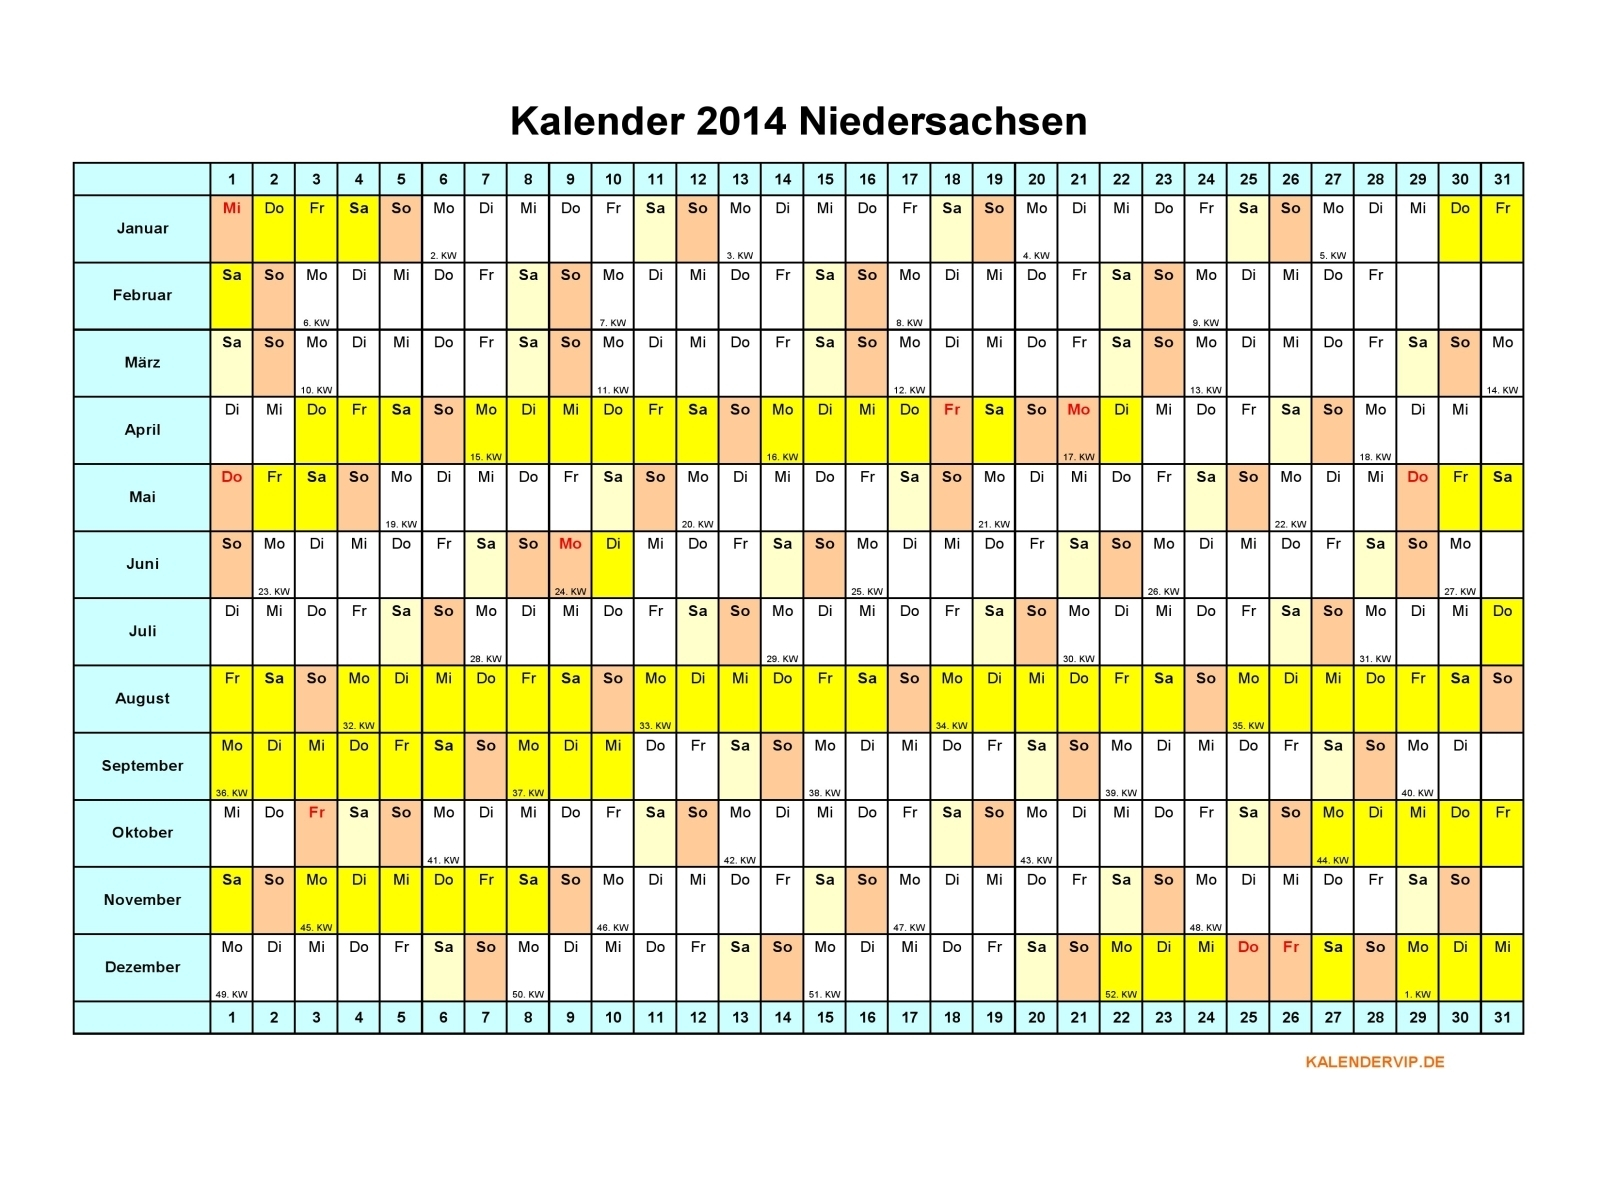 kalender 2014 niedersachsen kalendervip. Black Bedroom Furniture Sets. Home Design Ideas